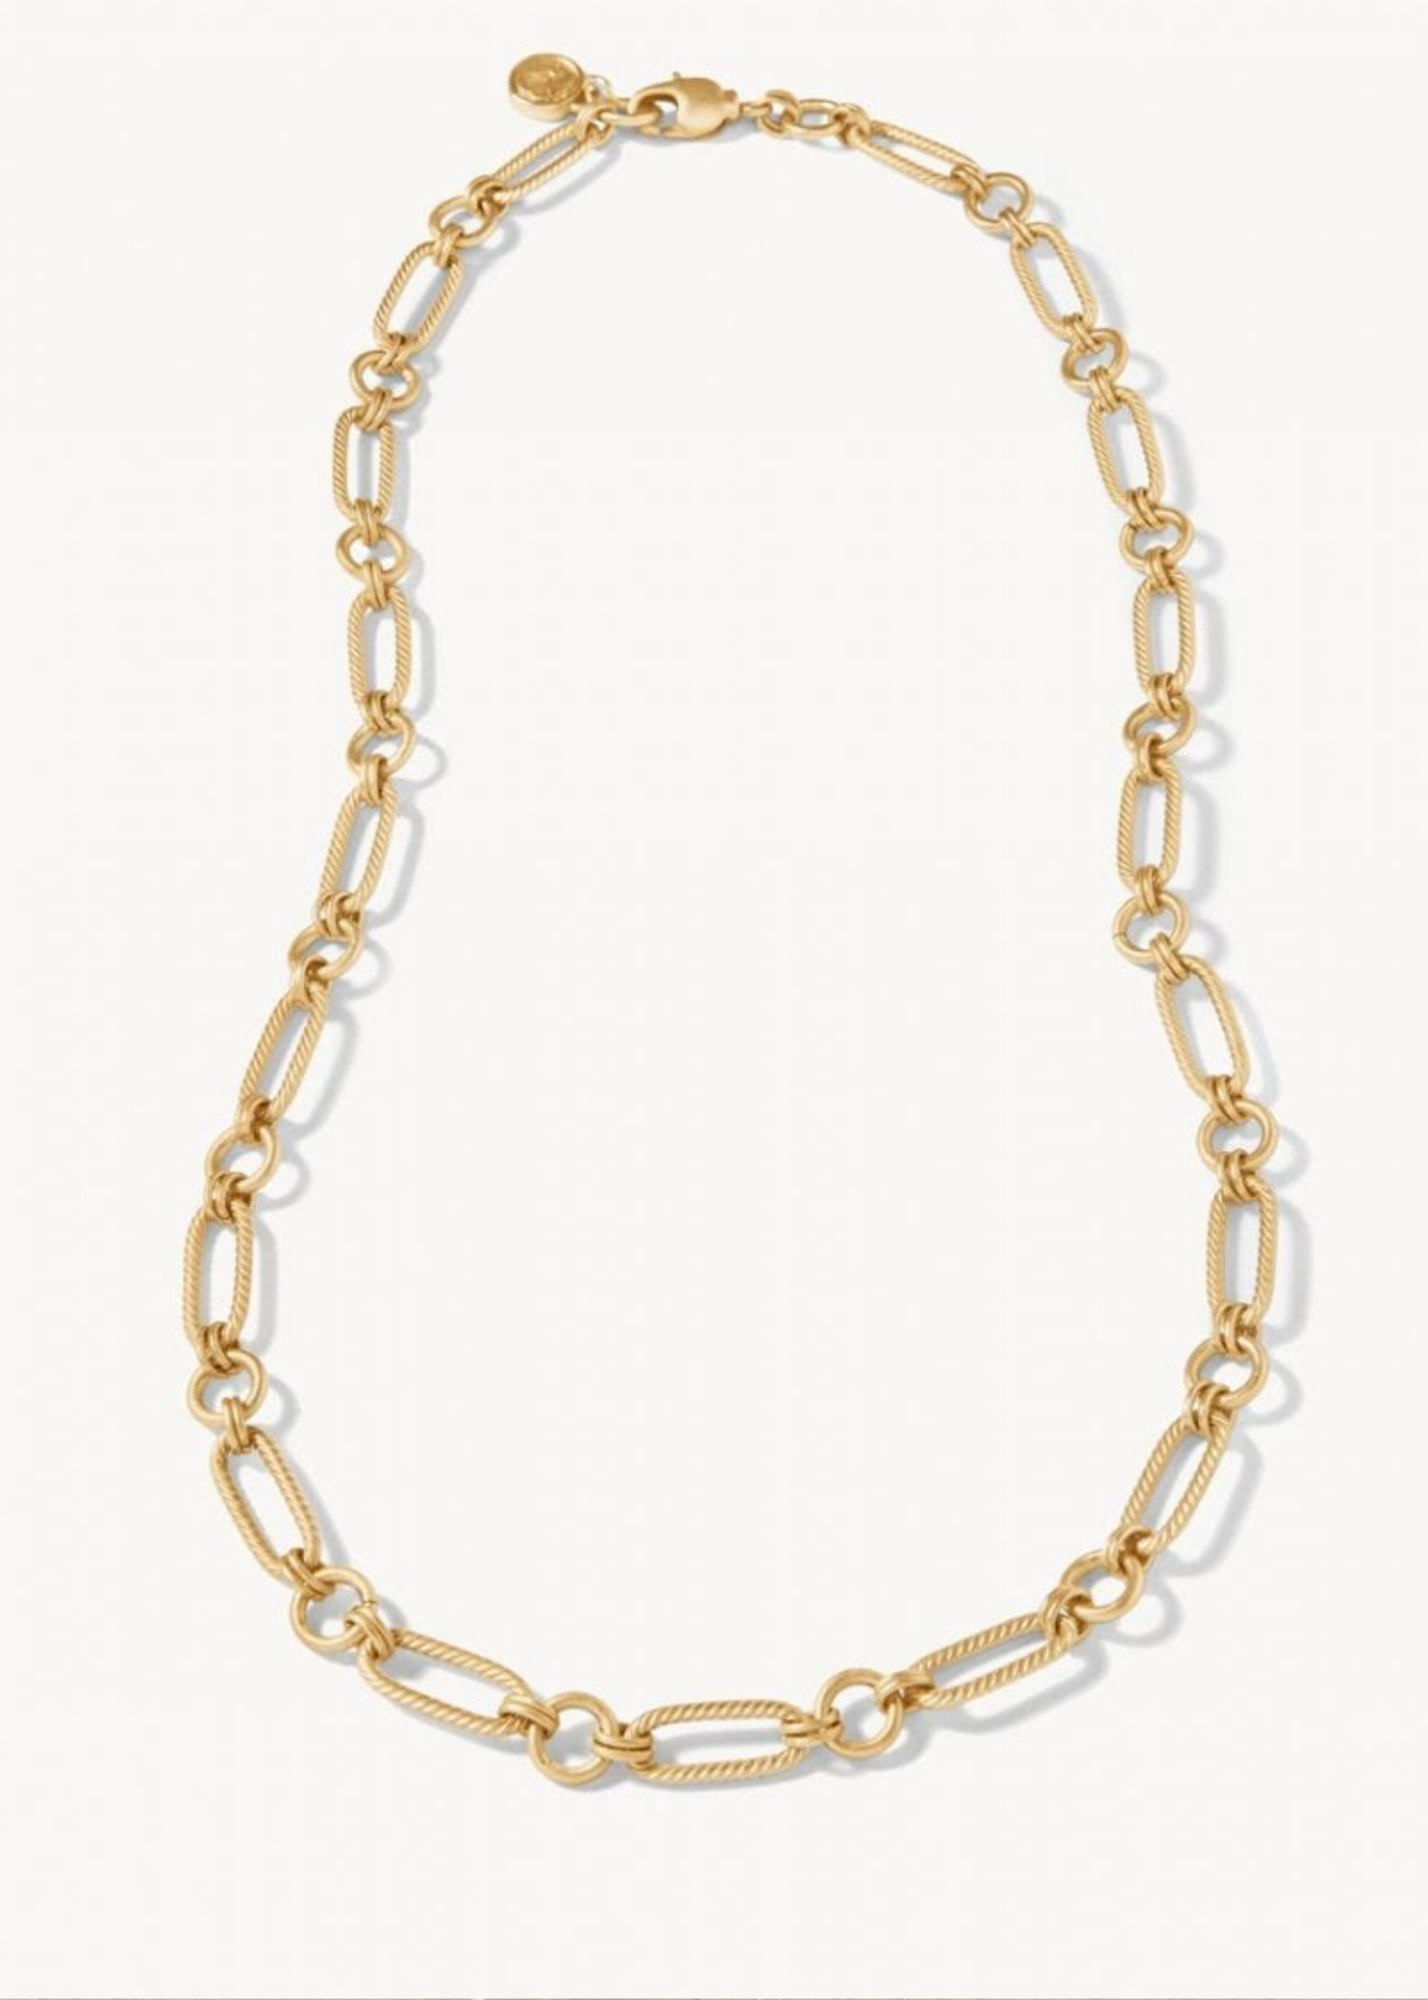 Ashley Chain Necklace - Gold